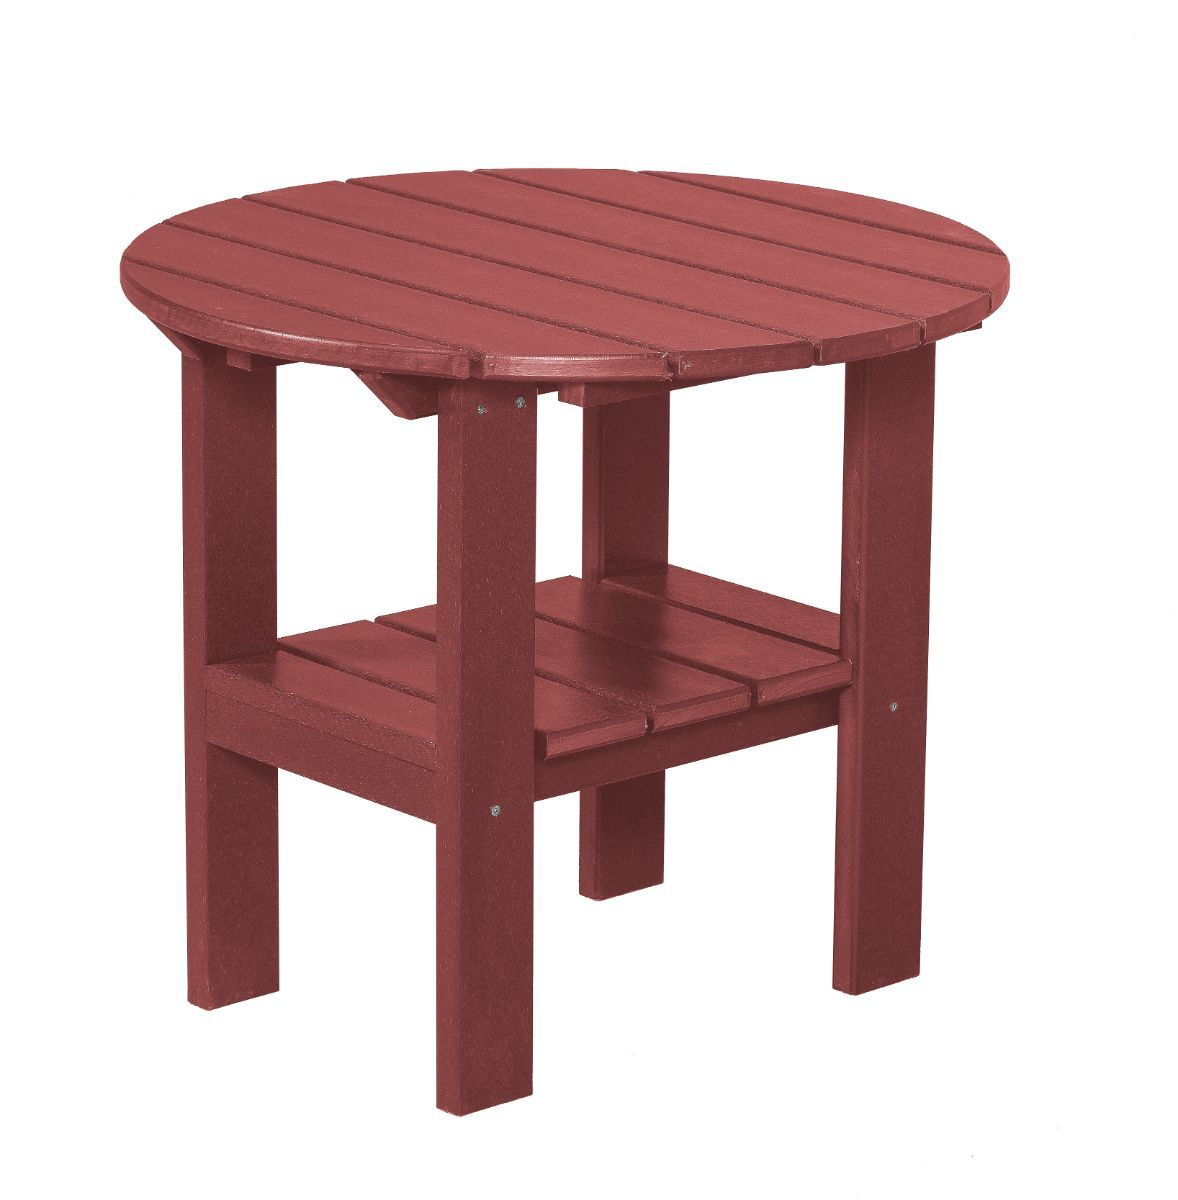 Cherry Wood Odessa Round Outdoor Side Table